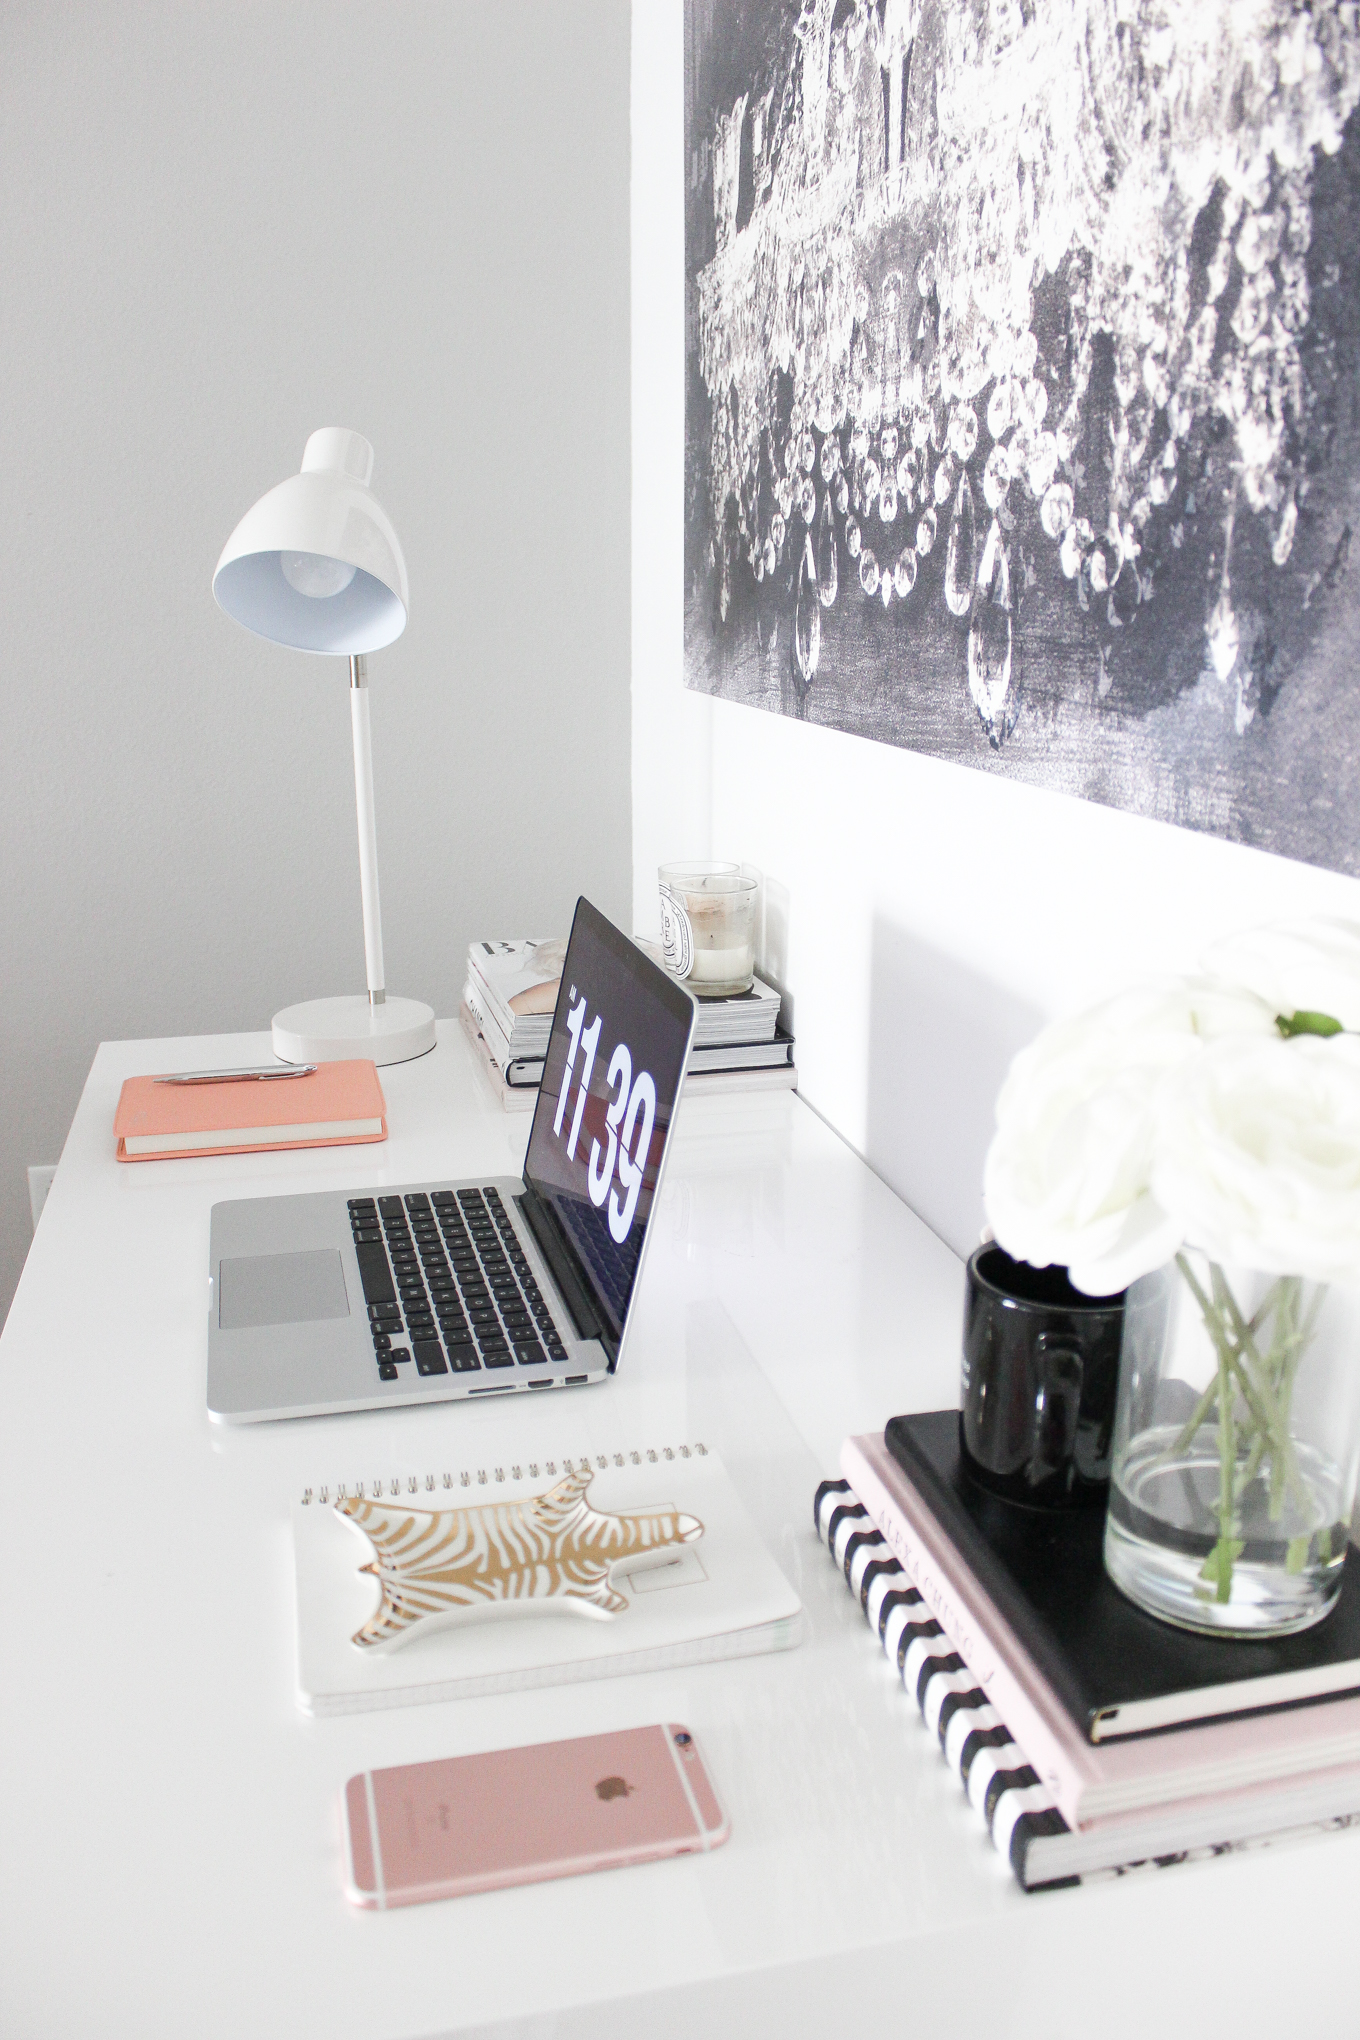 Blondie in the City   Office Space Decor, Desk Decor, Black and White office Decor, White Office Desk, Black Tufted Chair